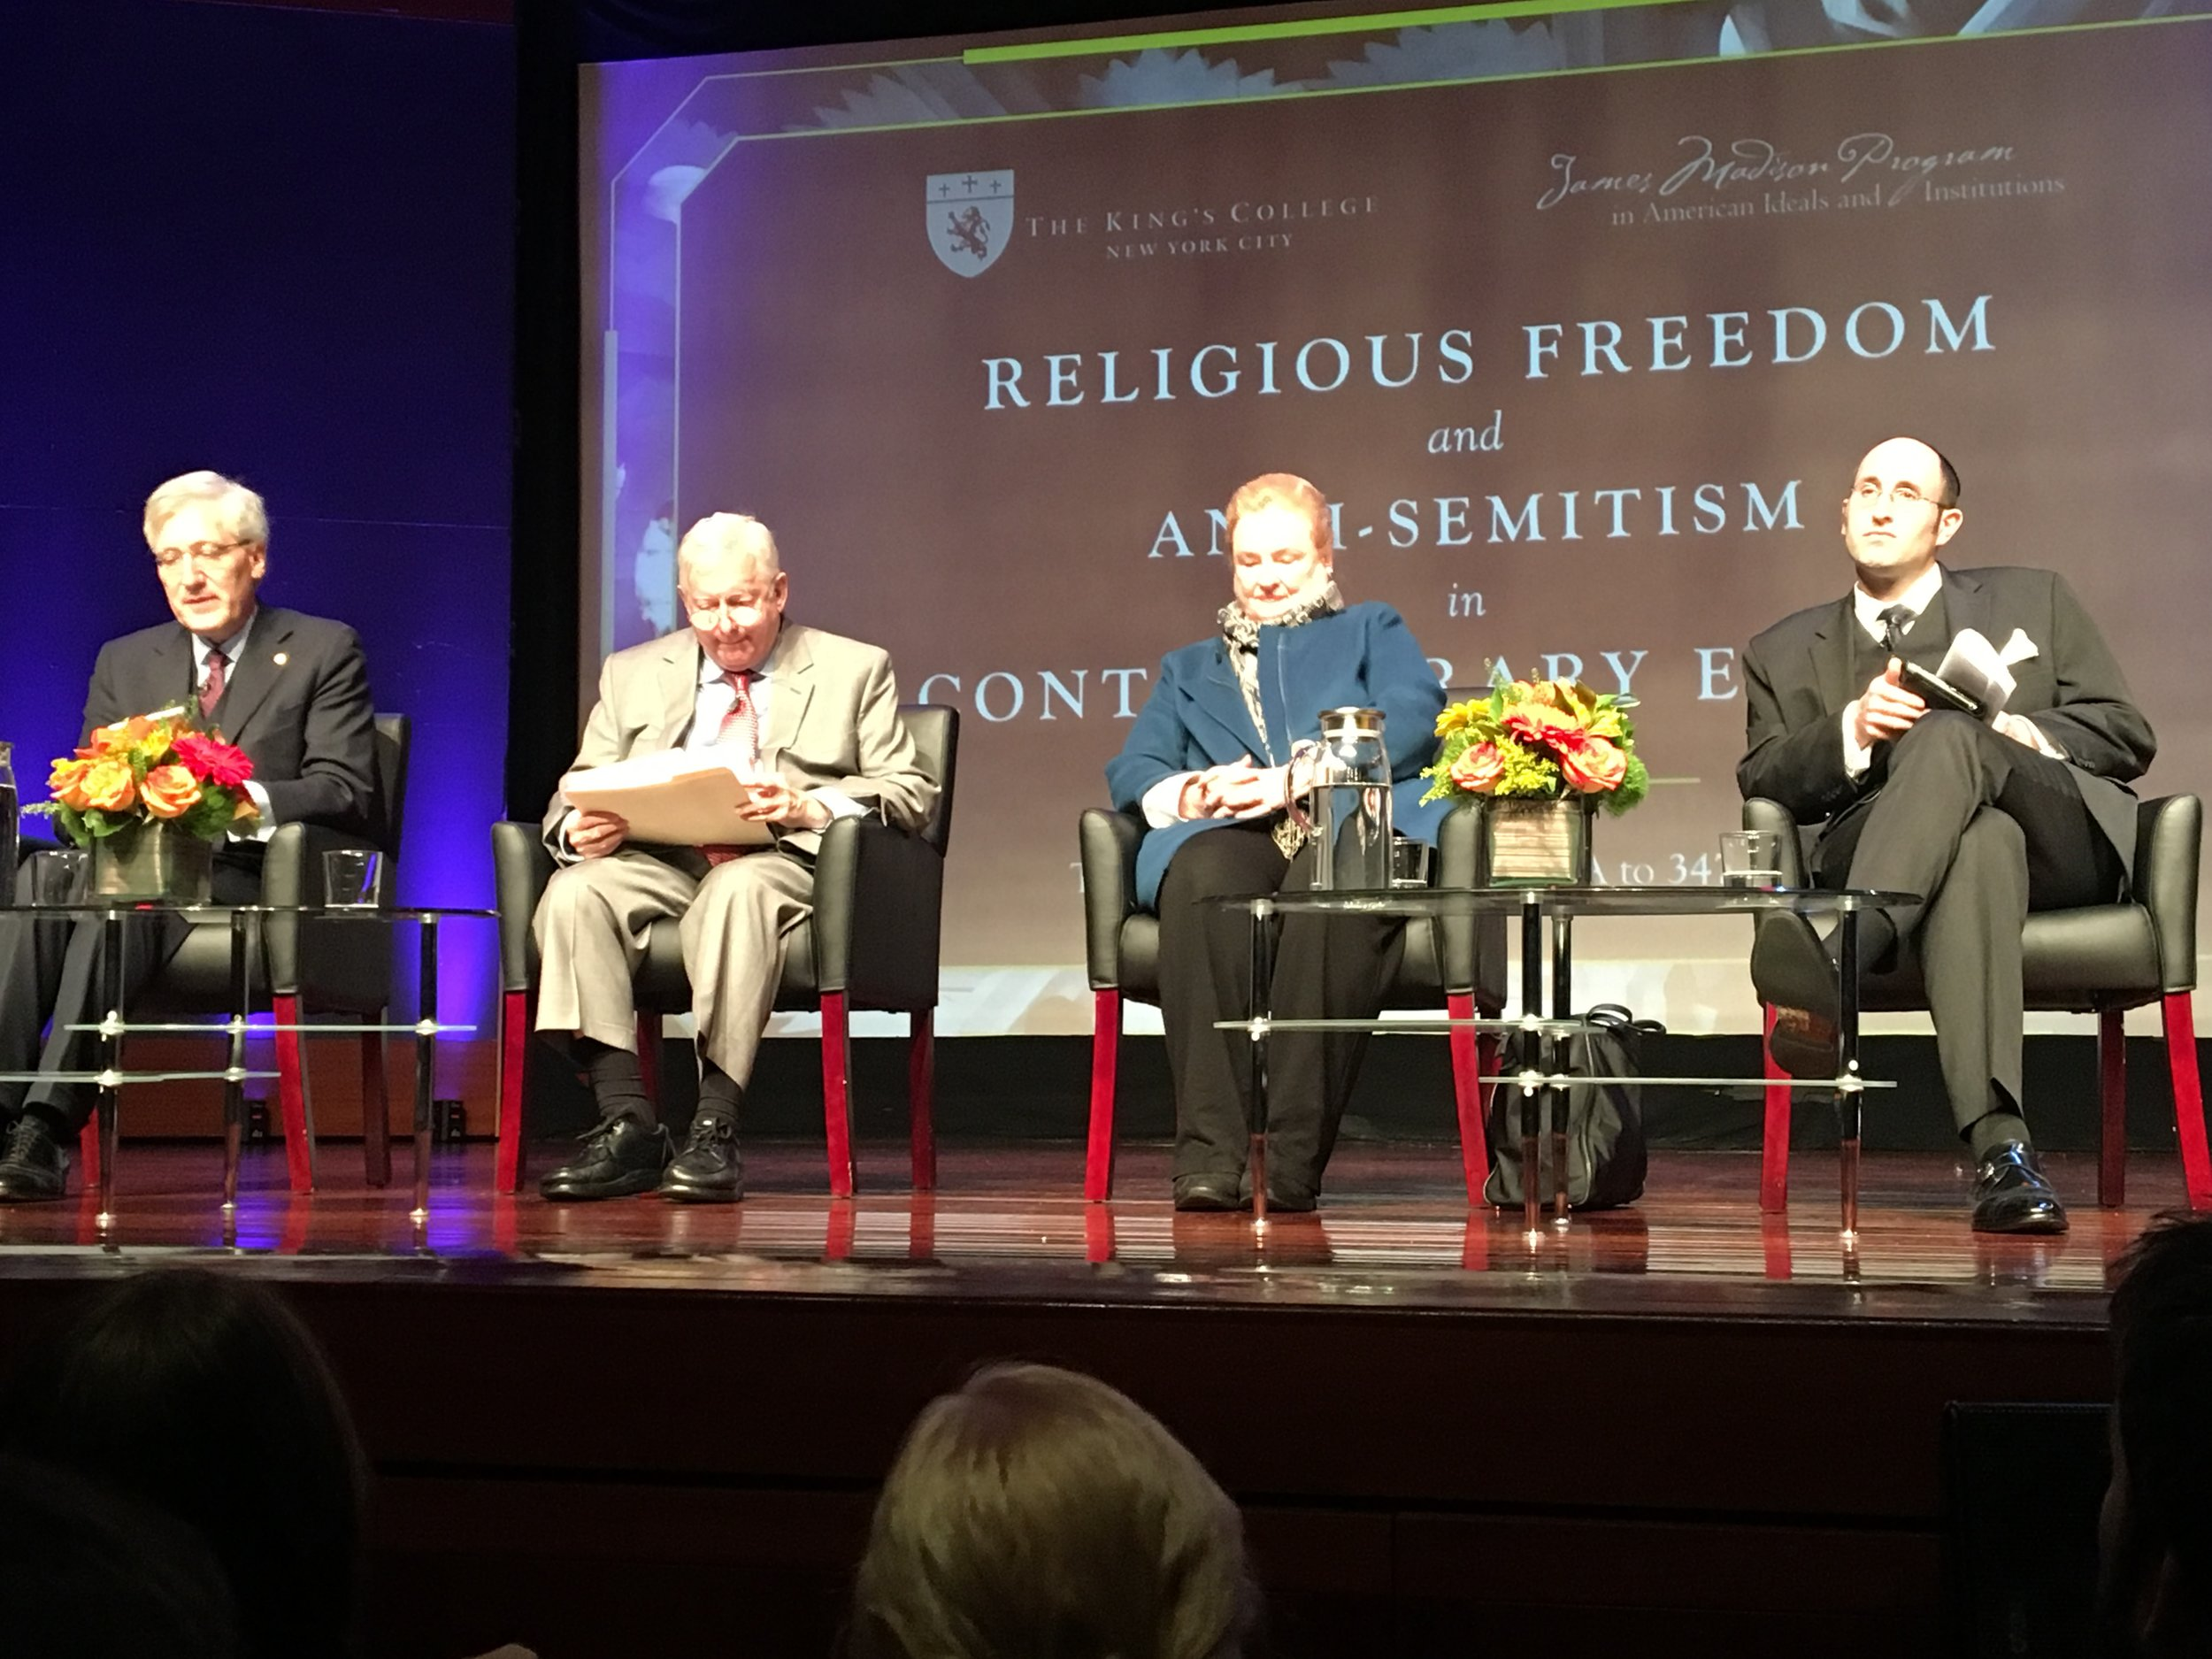 (From left to right): Robert P. George, Dr. David Dalin, Mary Ann Glendon and Dr. Meir Soloveichik discuss the rise of anti-Semitism in Europe at an event held in New York City.